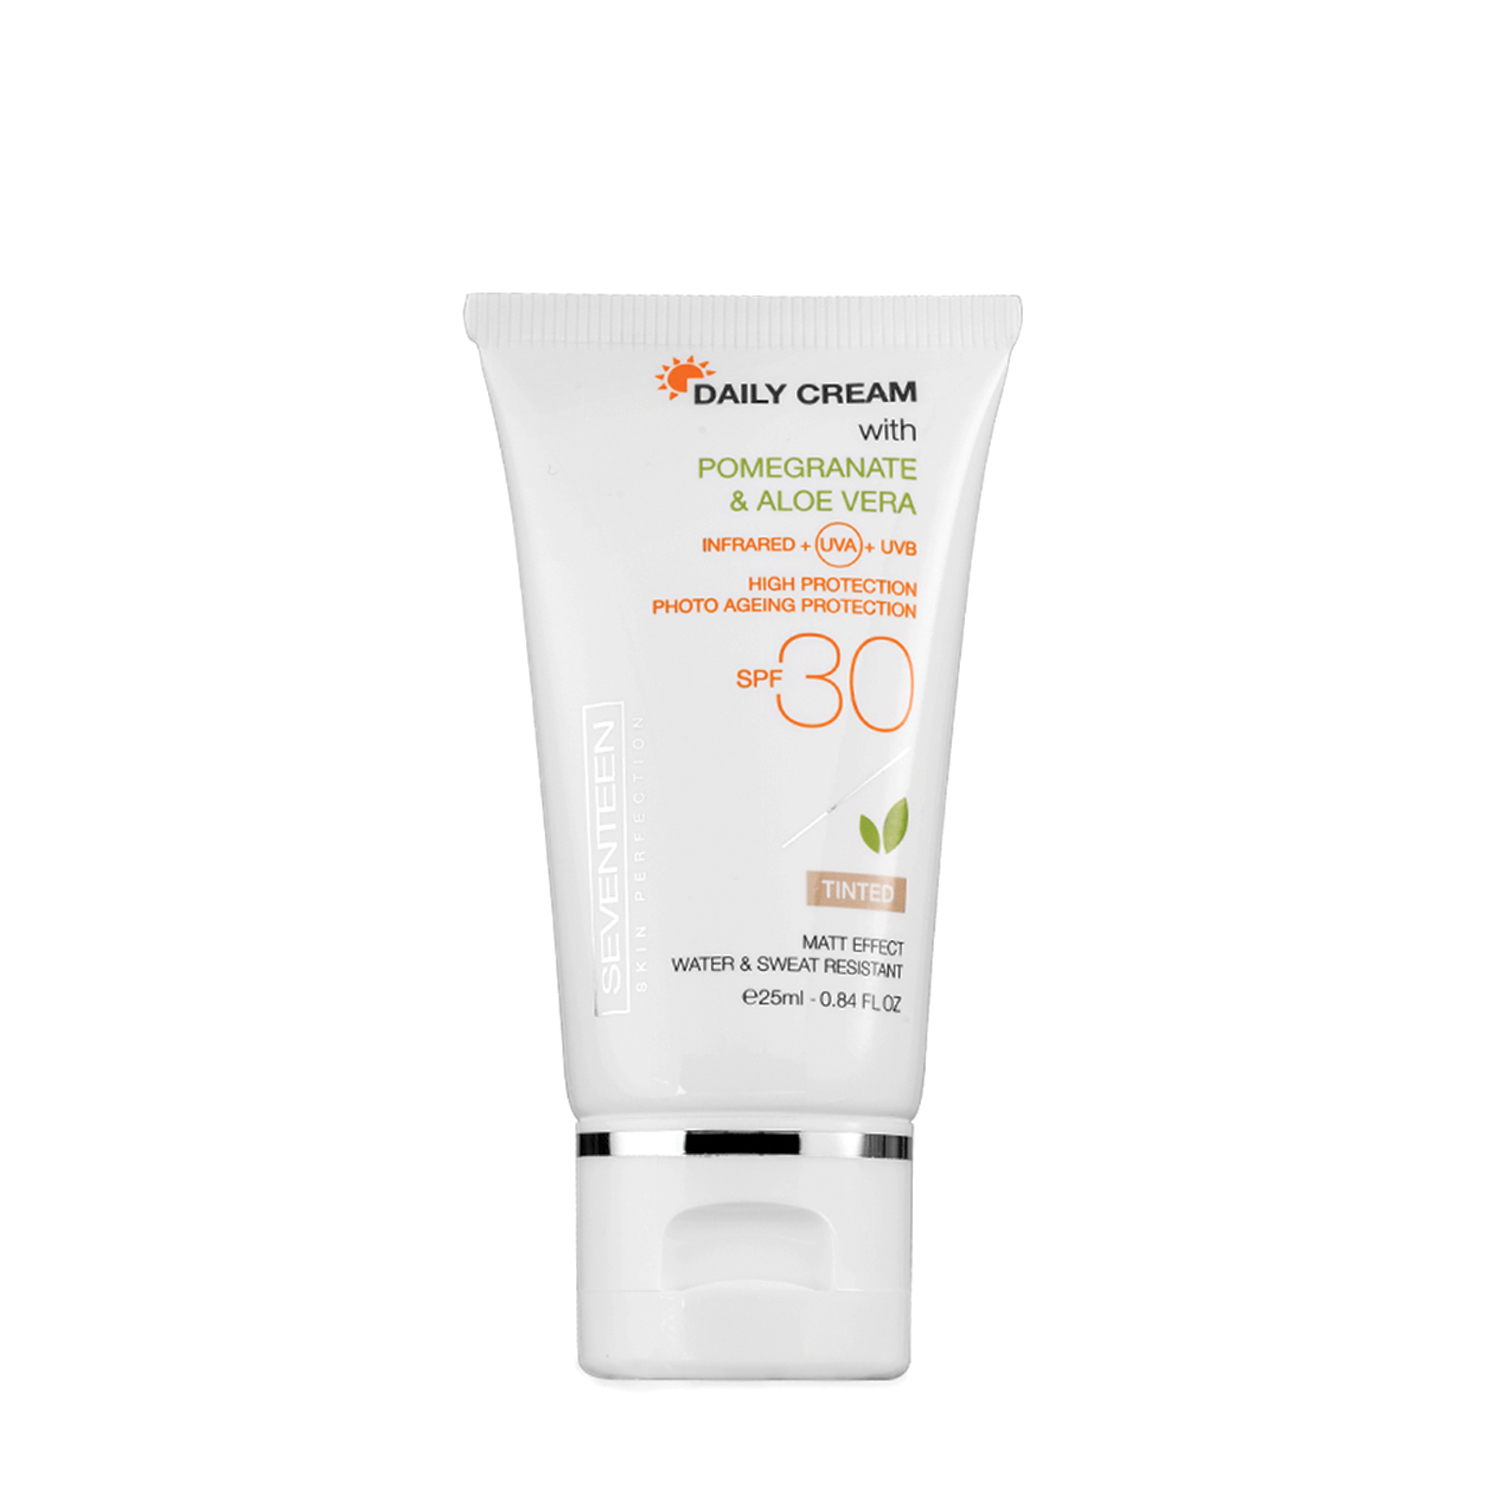 Daily Cream SPF30 Tinted Travel Size